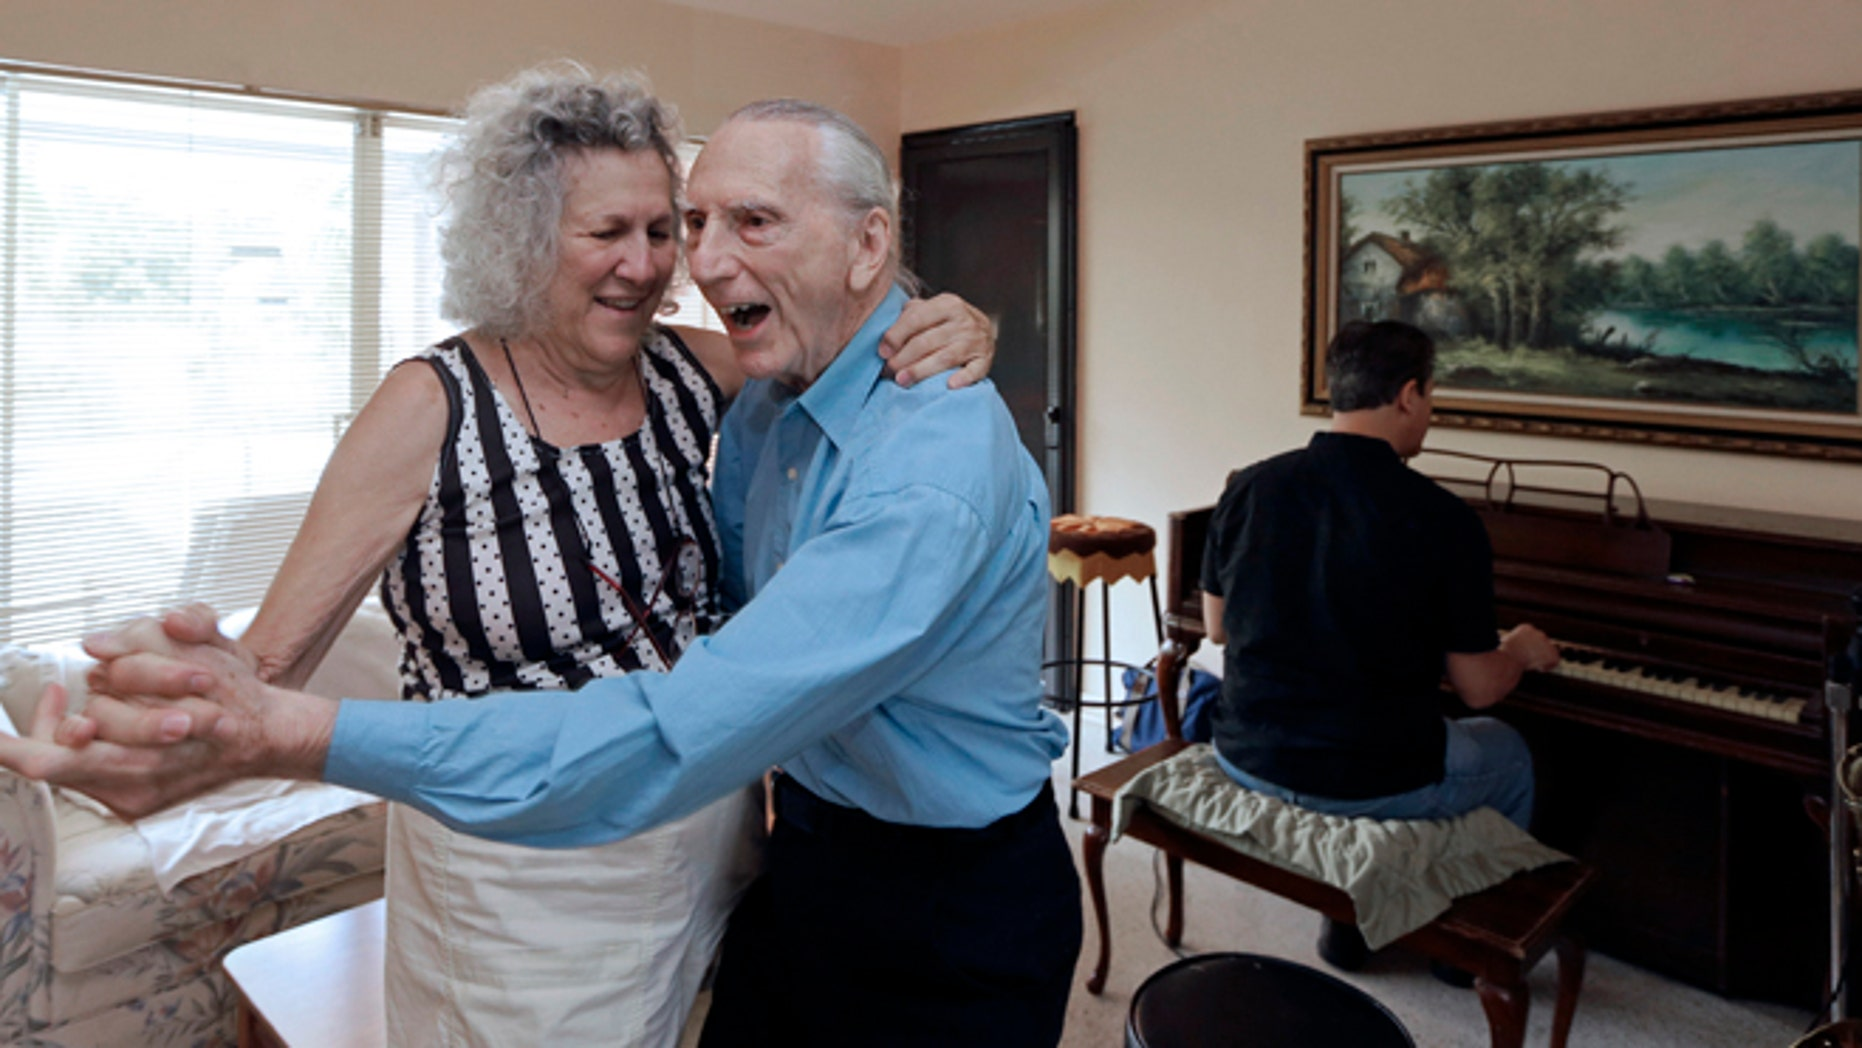 MAY 11: Al Karp, right foreground, and his wife Saundra, left, dance to the music their son Larry, background, plays on the piano at their home in North Miami Beach, Fla.